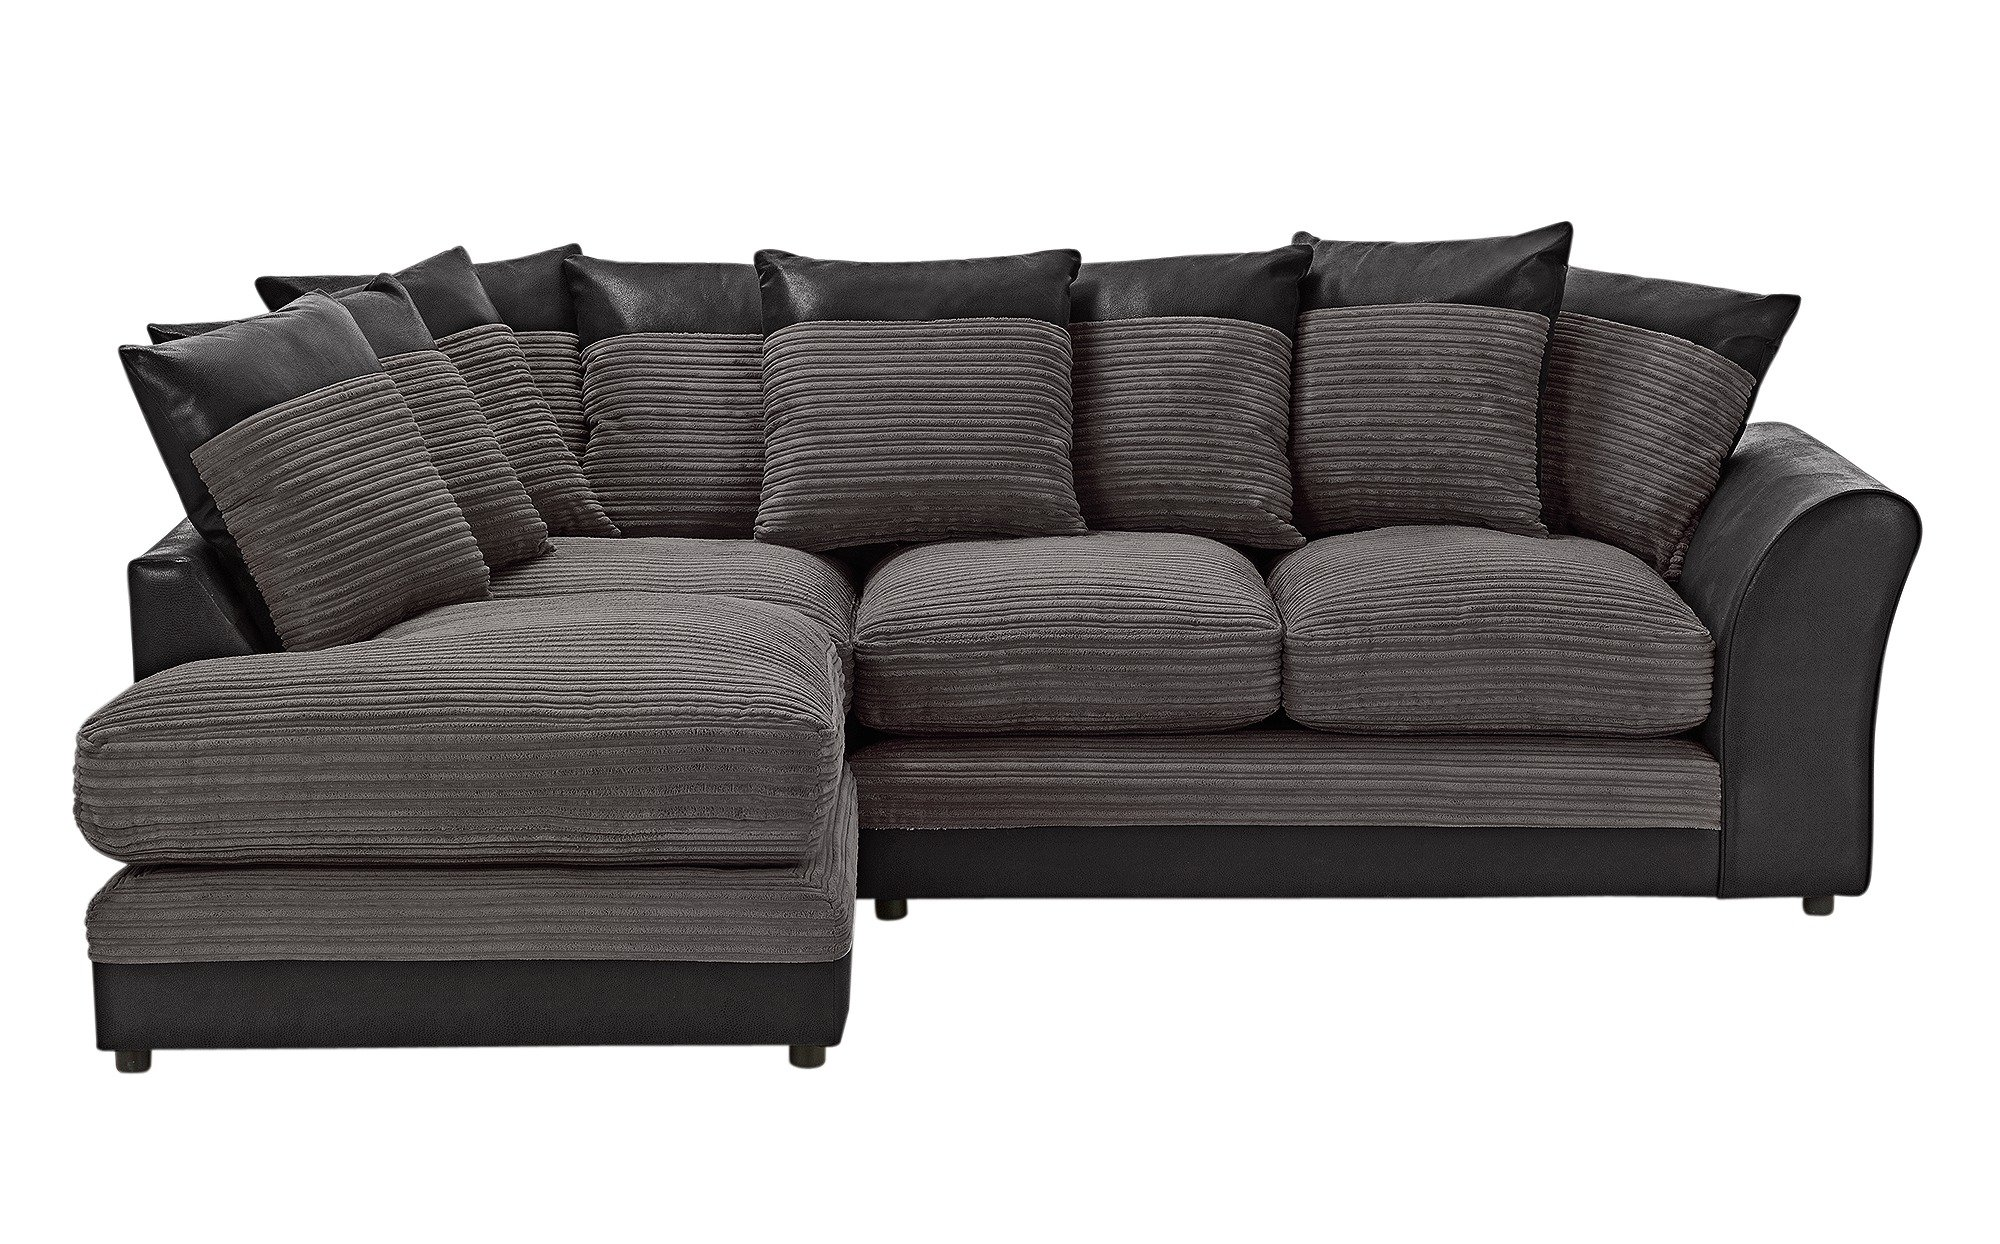 3 seater rattan effect mini corner sofa black baja convert a couch bed with set of 2 recliners multiple colors argos | www.energywarden.net